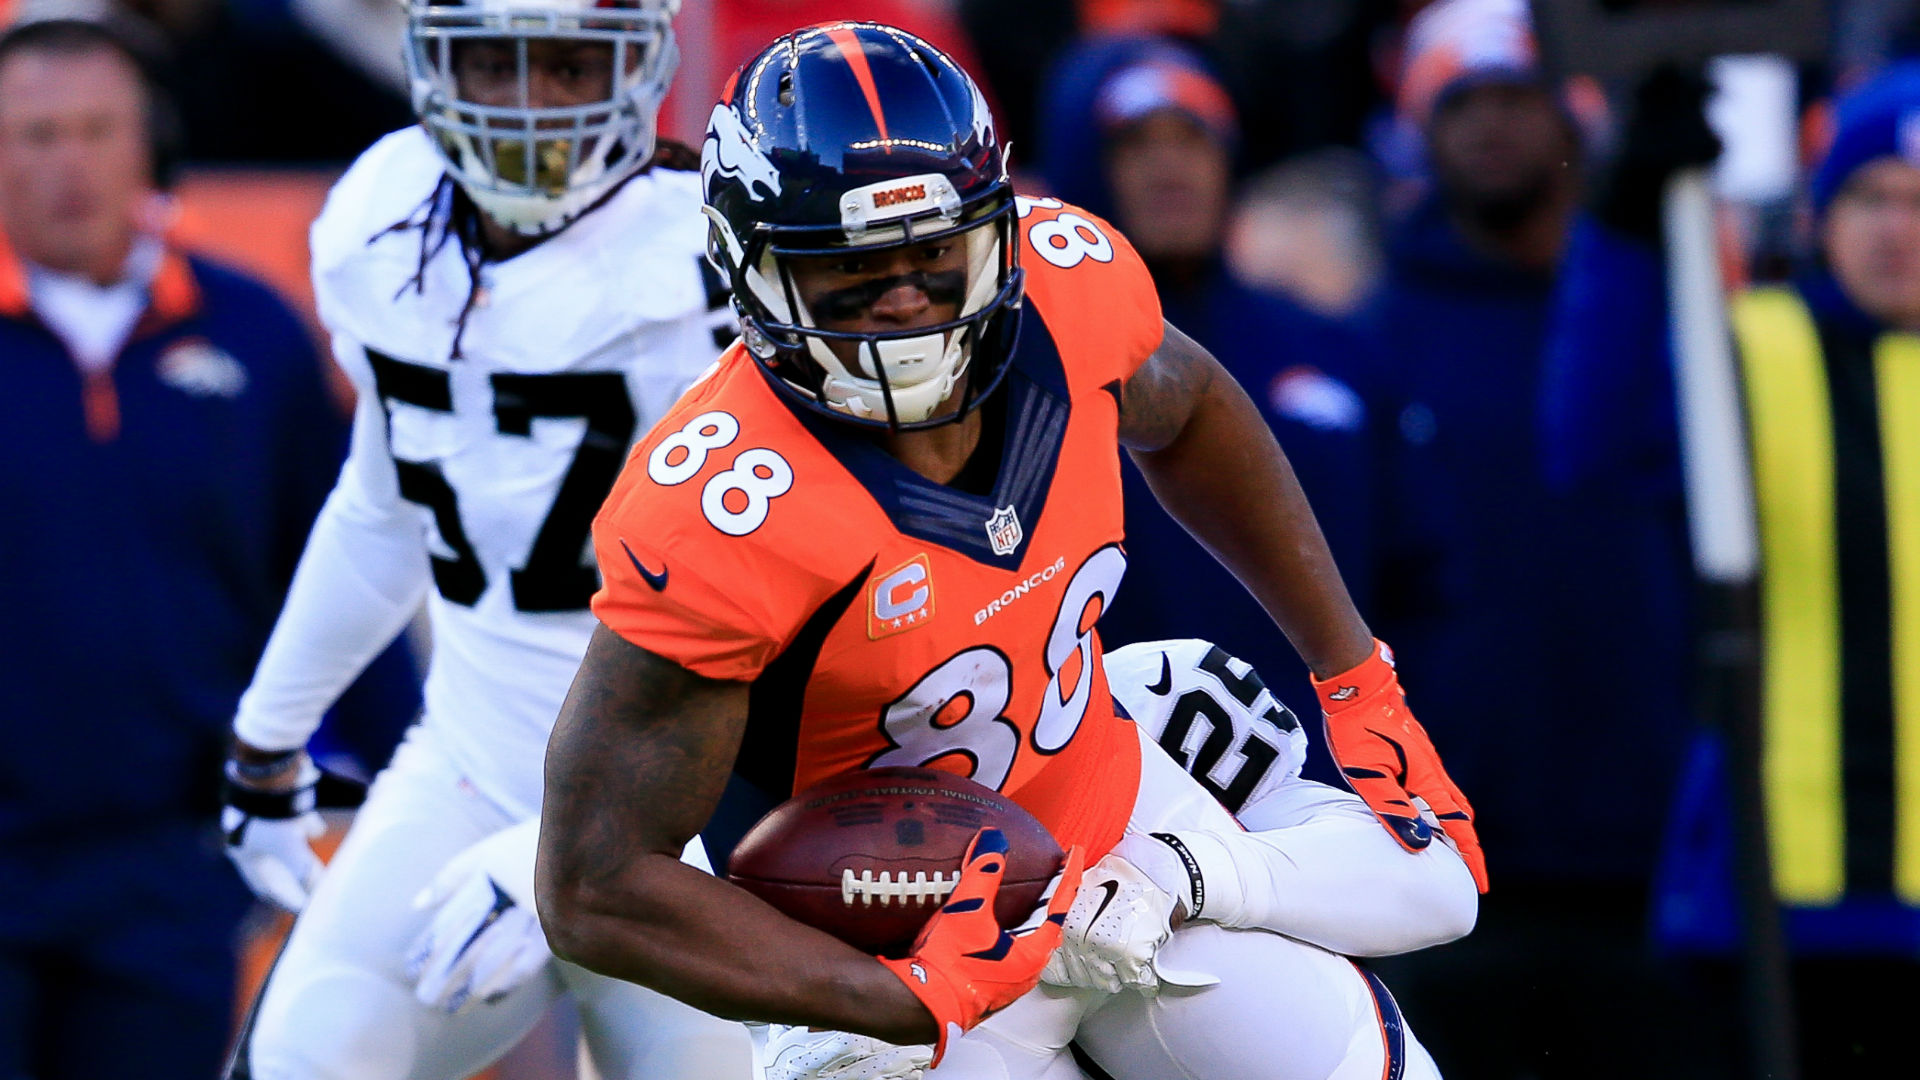 Demaryius-Thomas-1615-getty-FTR.jpg